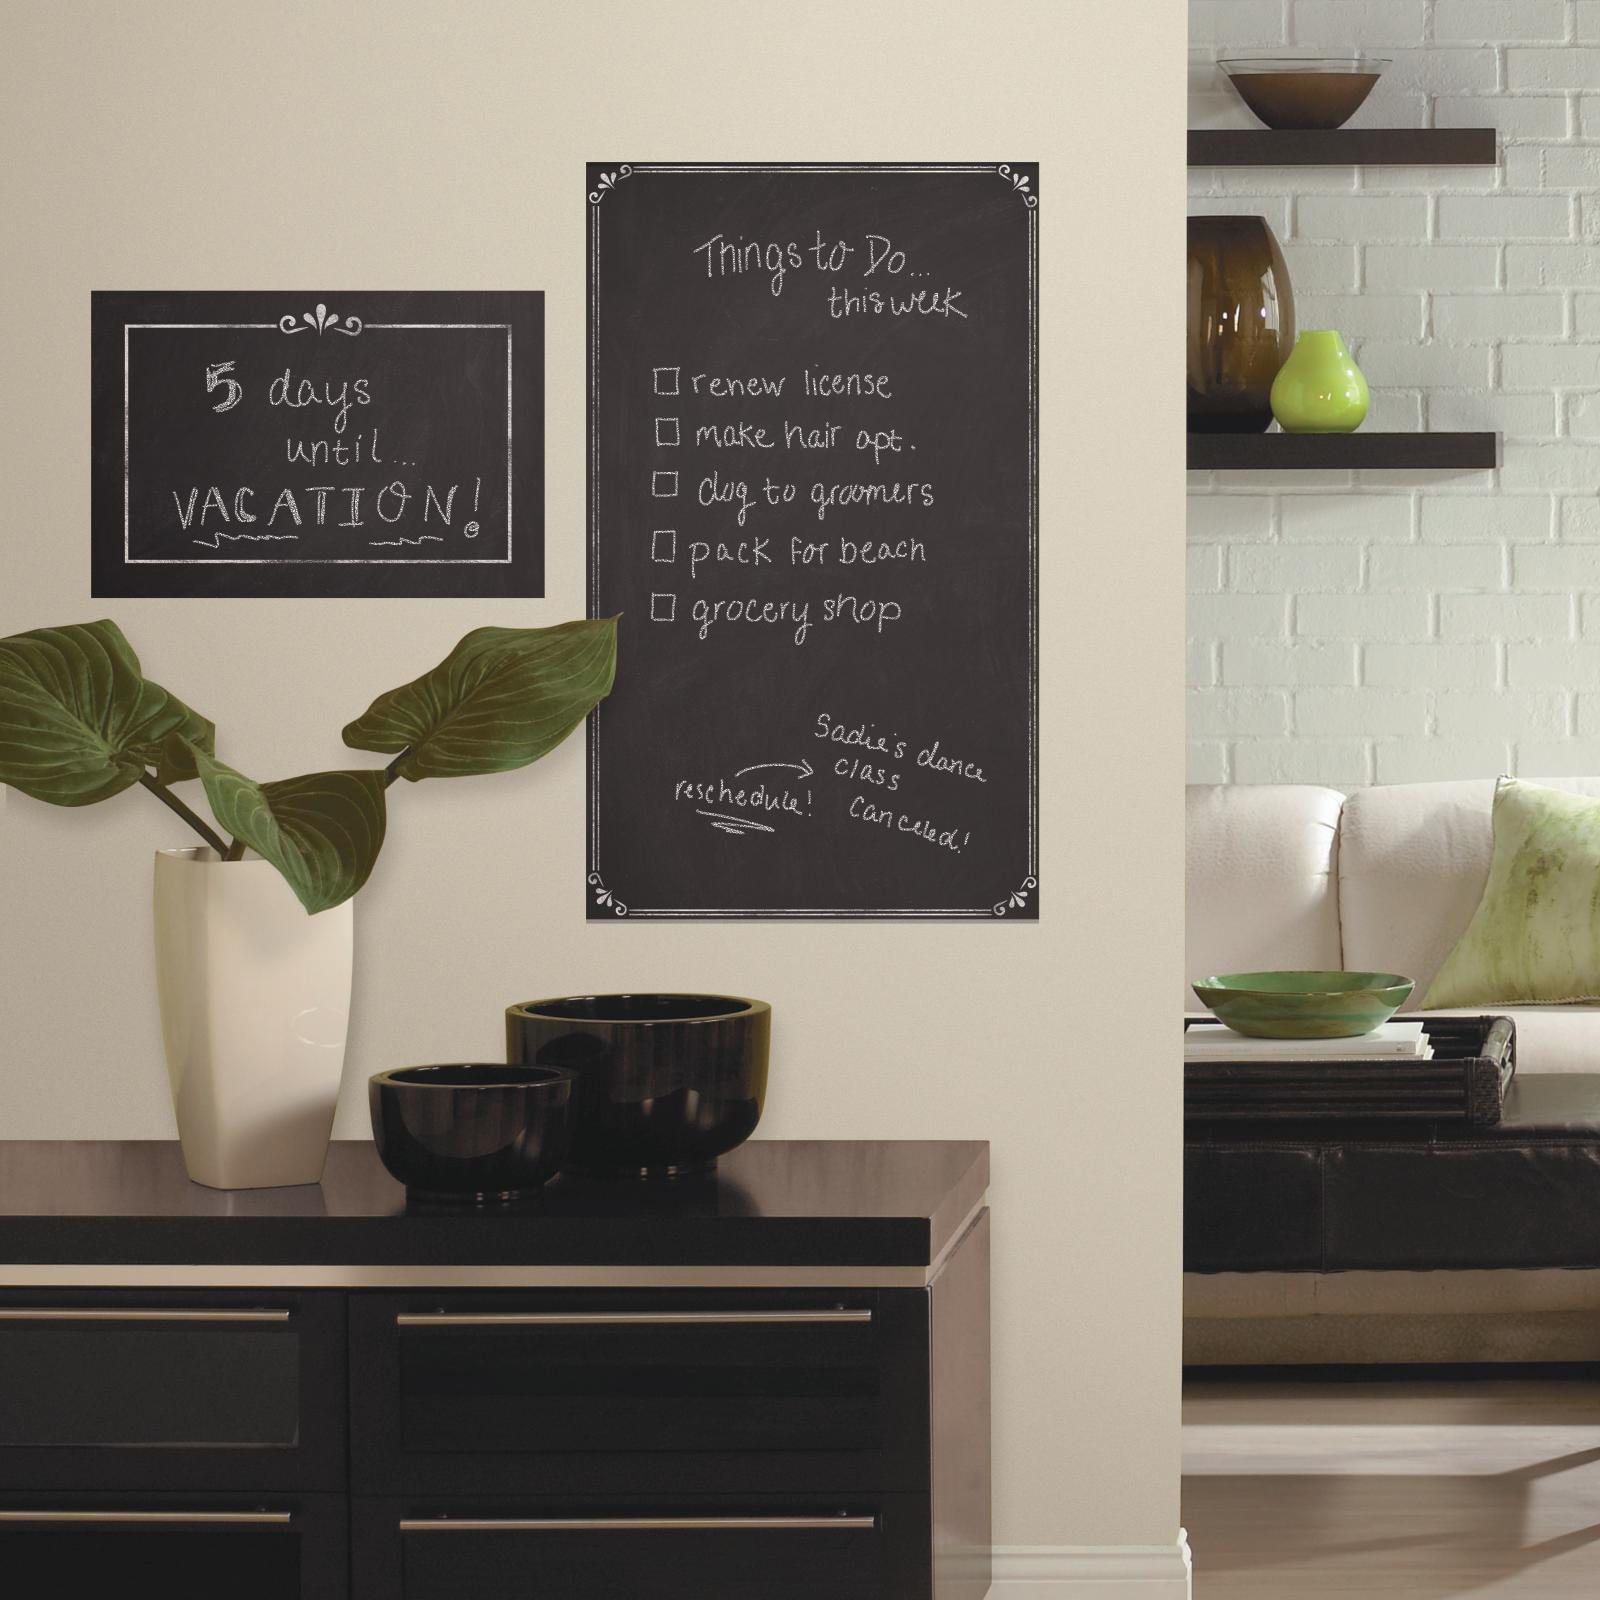 roommates decorative chalkboard peel and stick giant wall decals  - roommates decorative chalkboard peel and stick giant wall decals  home home decor  wall decor  tapestries  appliques